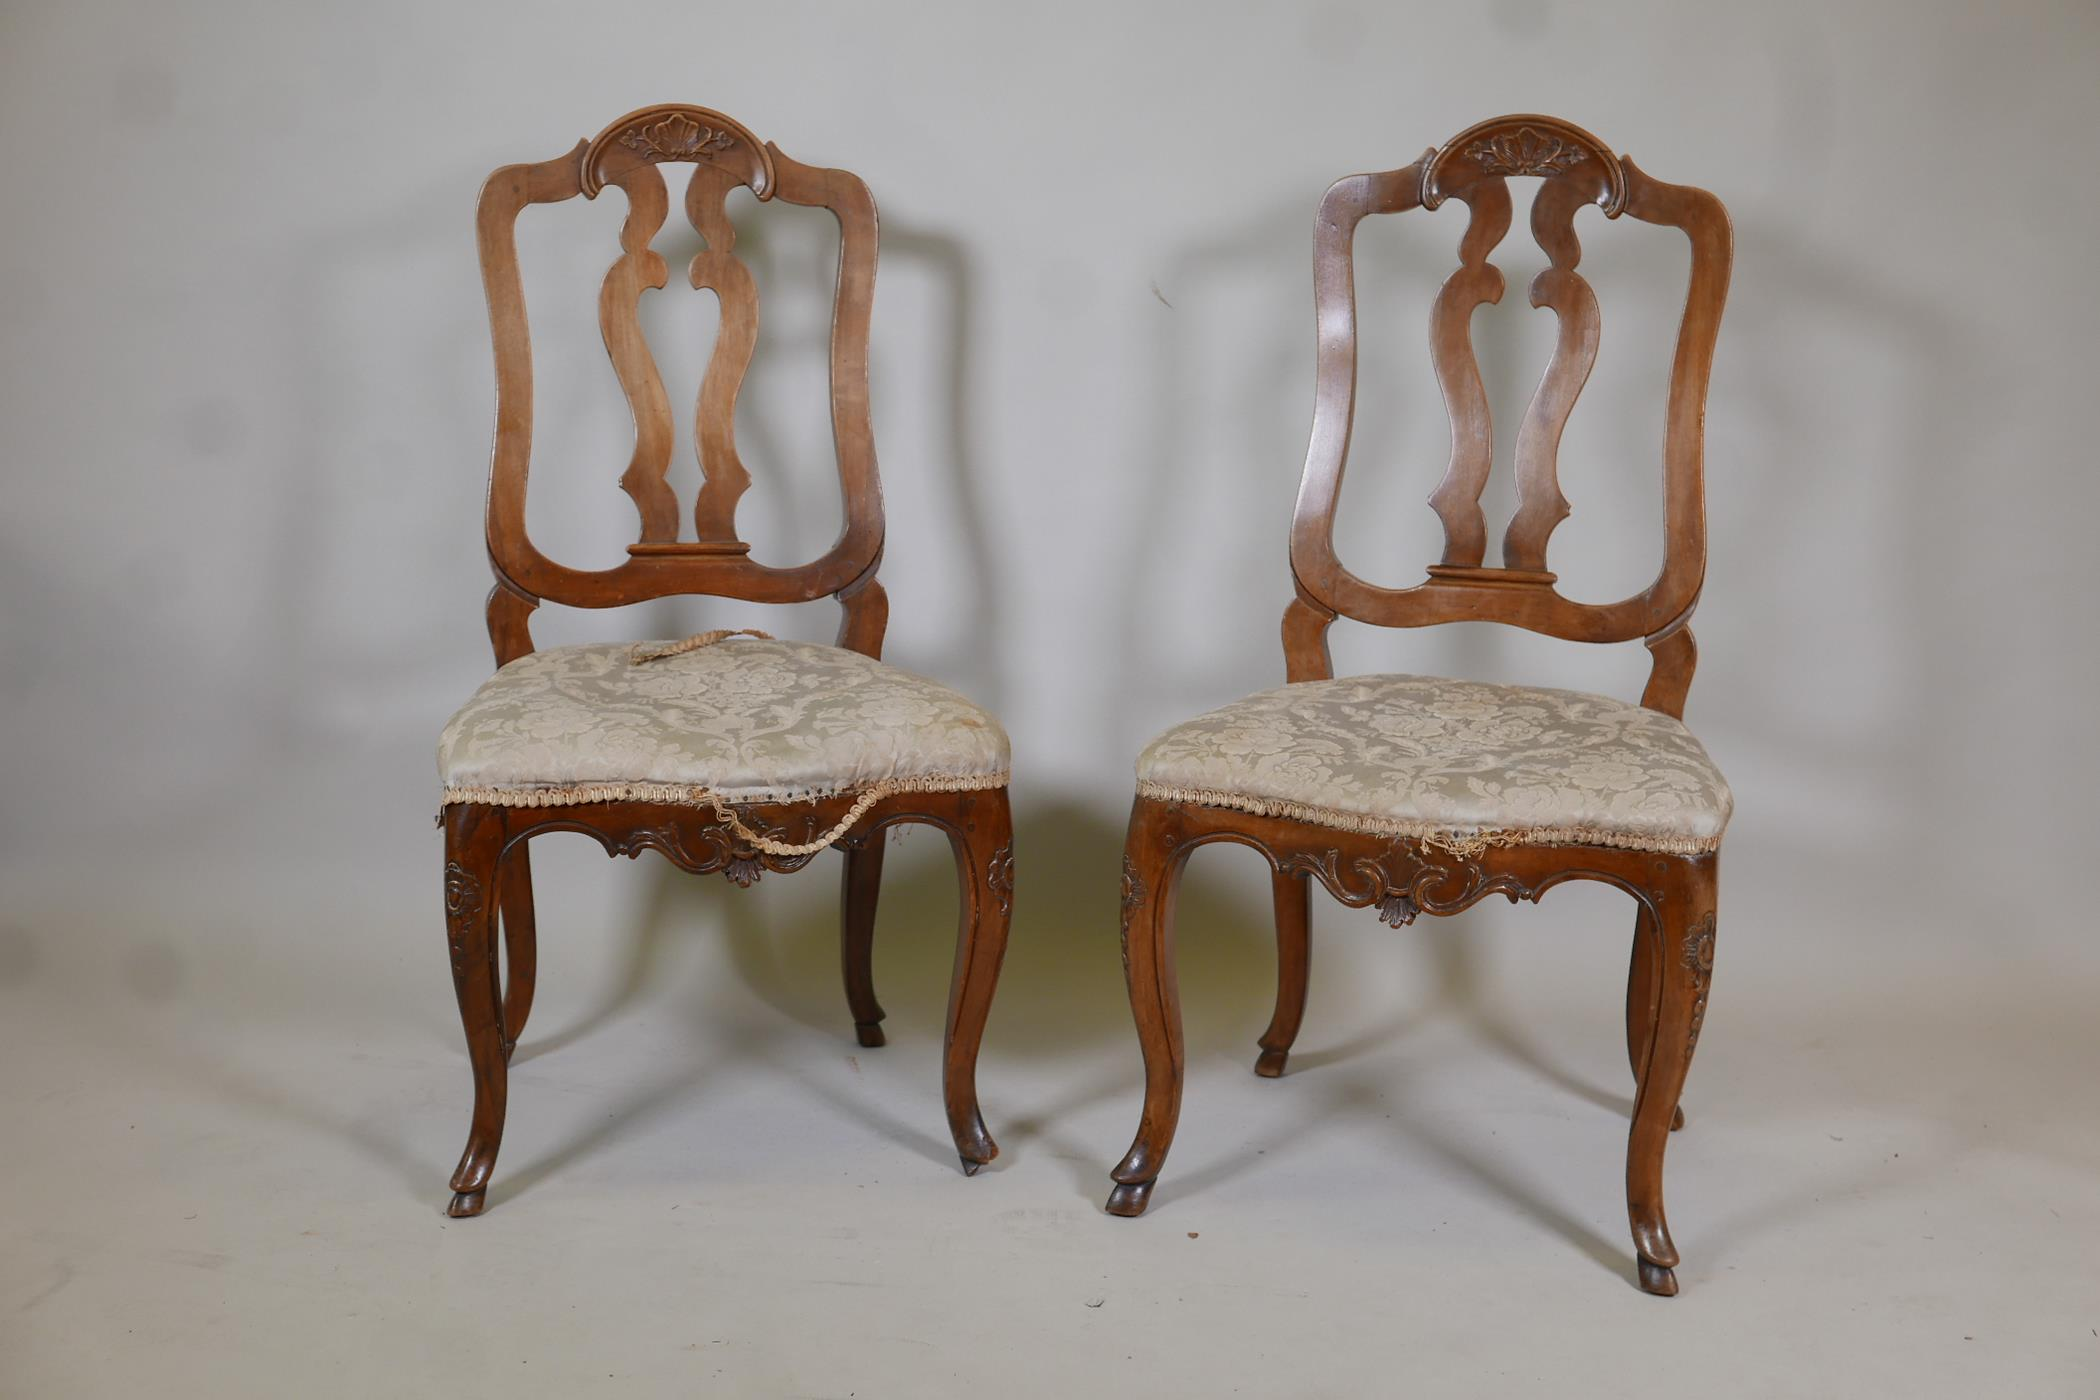 A pair of C18th French walnut pierced splat back side chairs with finely carved decoration, raised